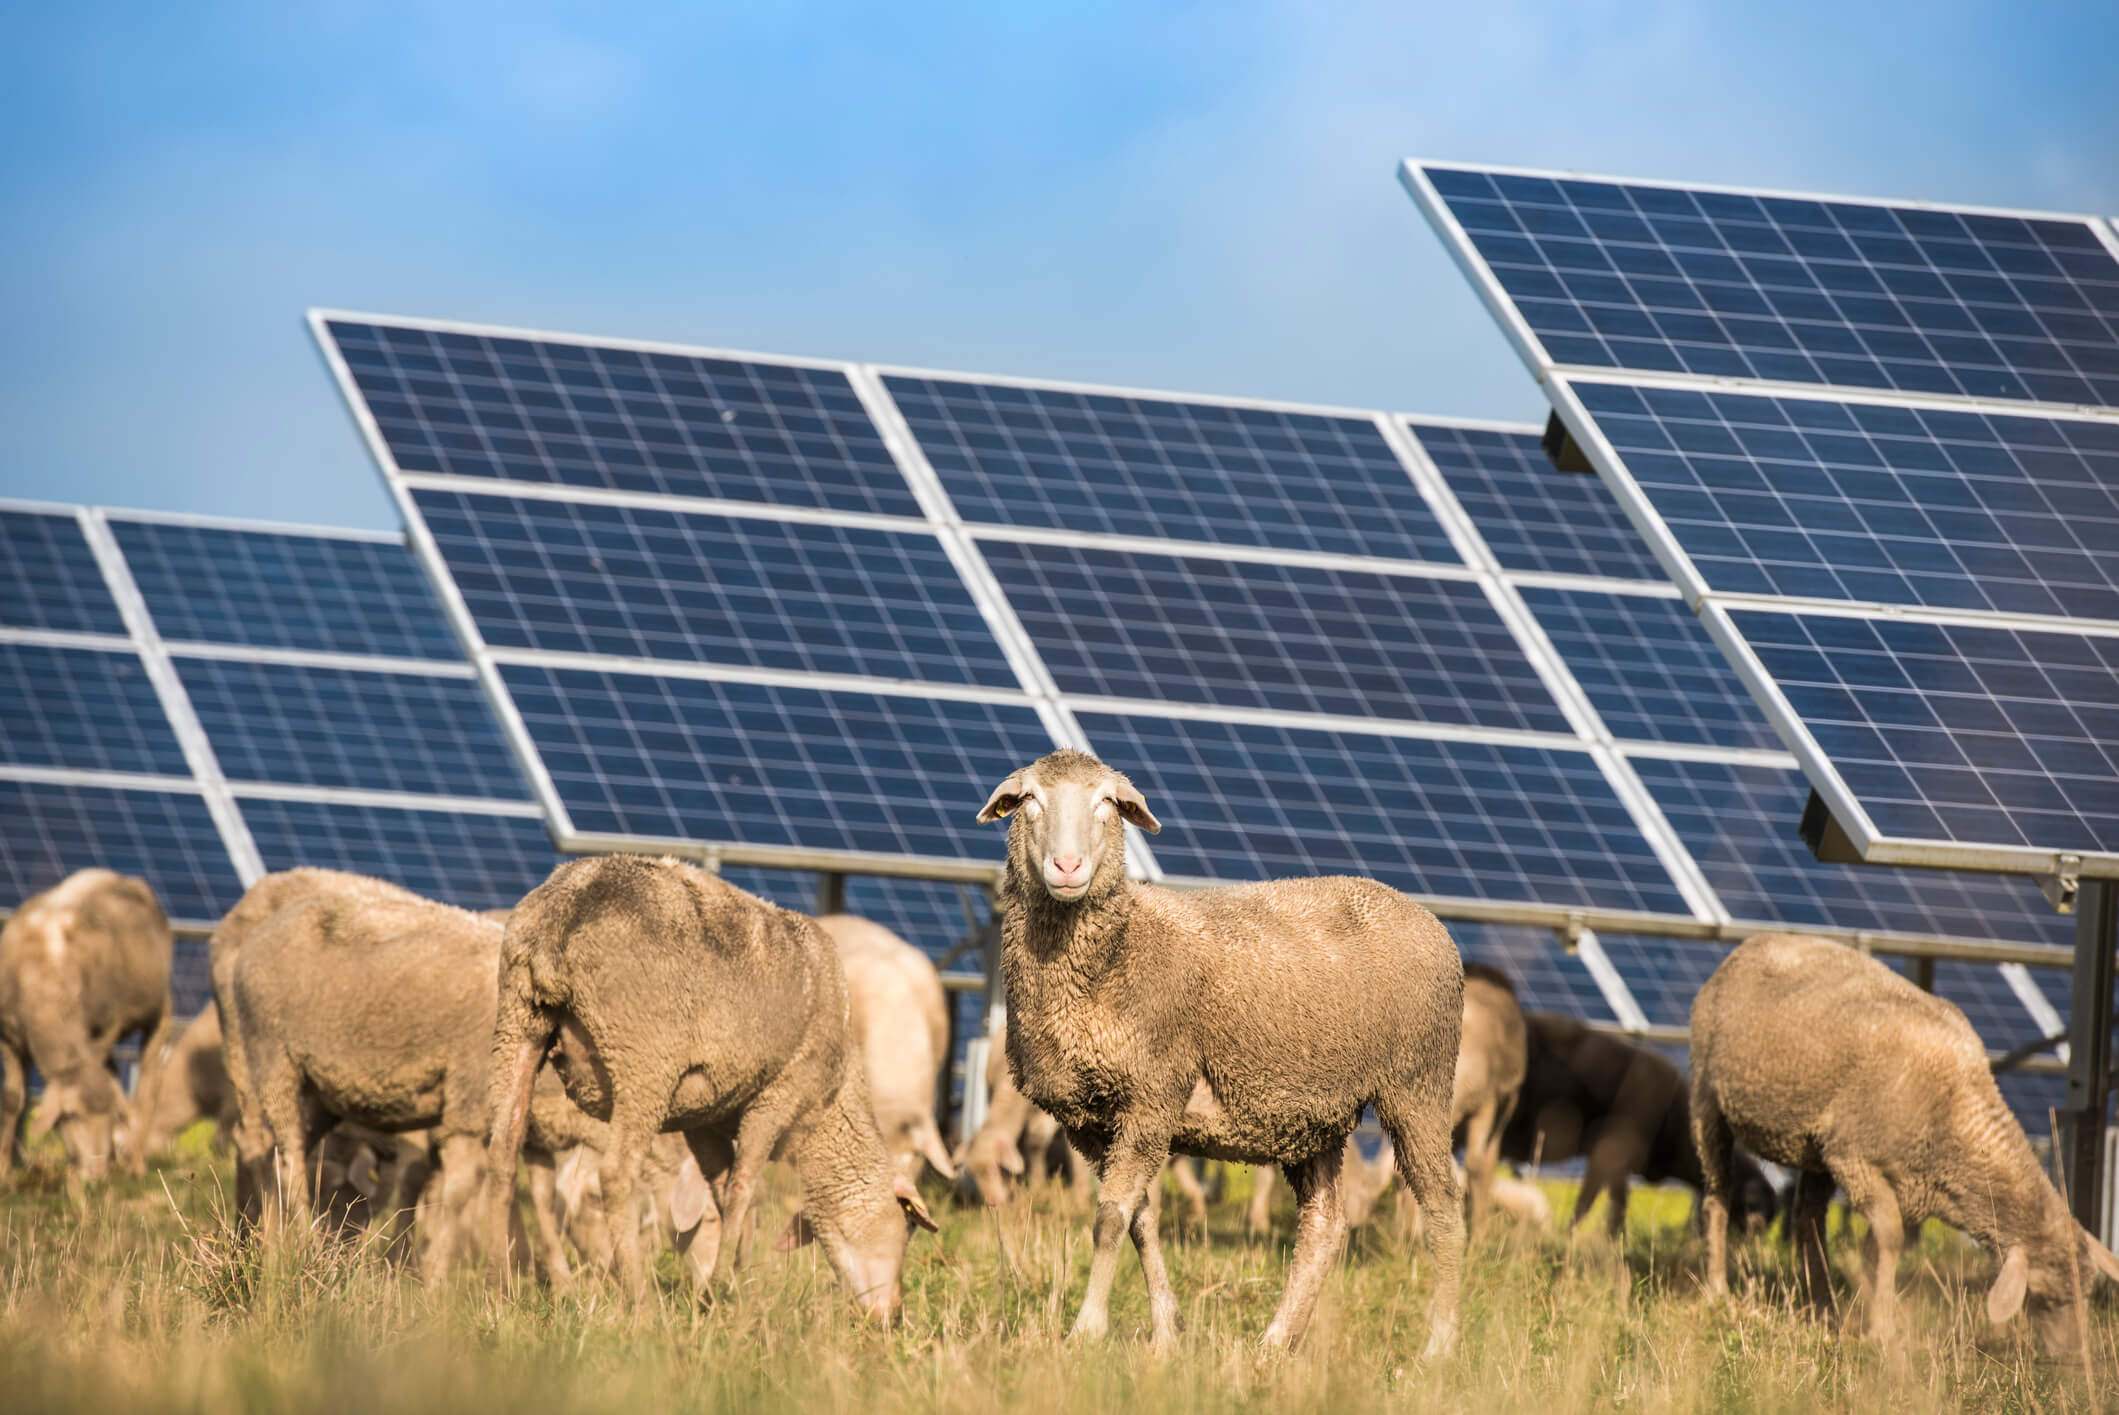 Image: Solar panels with sheep